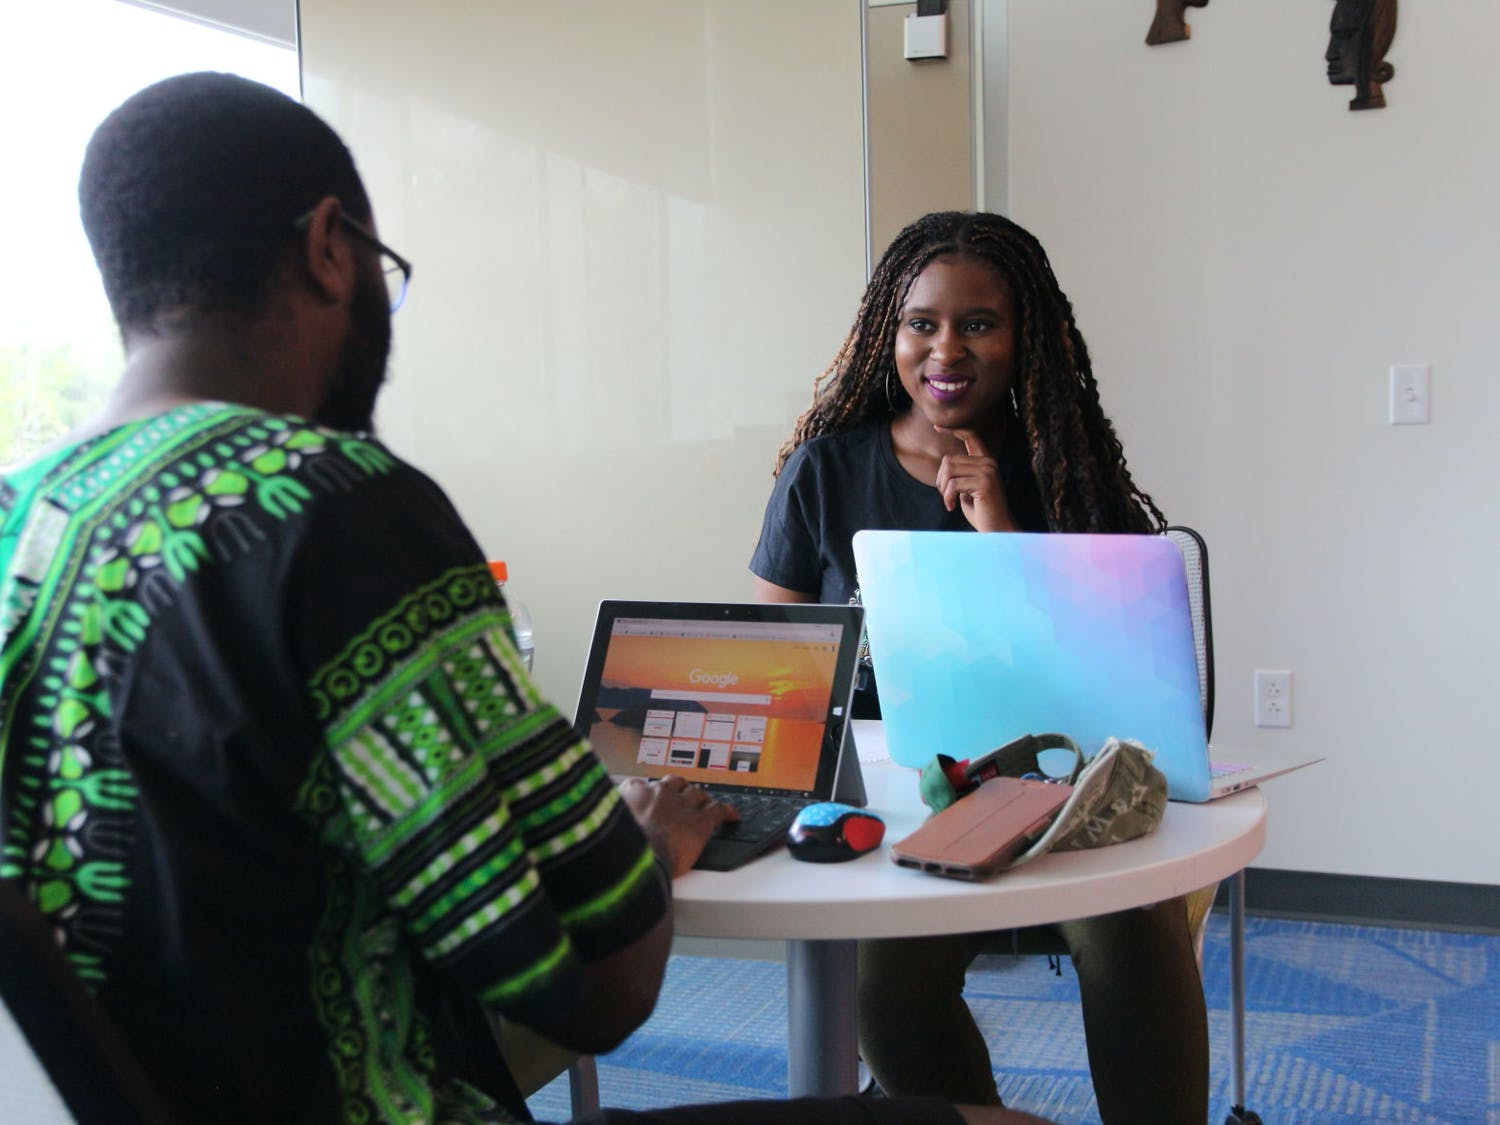 Daniel Clayton, 23, UF electrical engineering senior, speaks to Ashley Marceus, 21, UF triple major in political science, African American studies and women's studies third year about organizational planning inside the Black Enrichment Center on Tuesday afternoon.